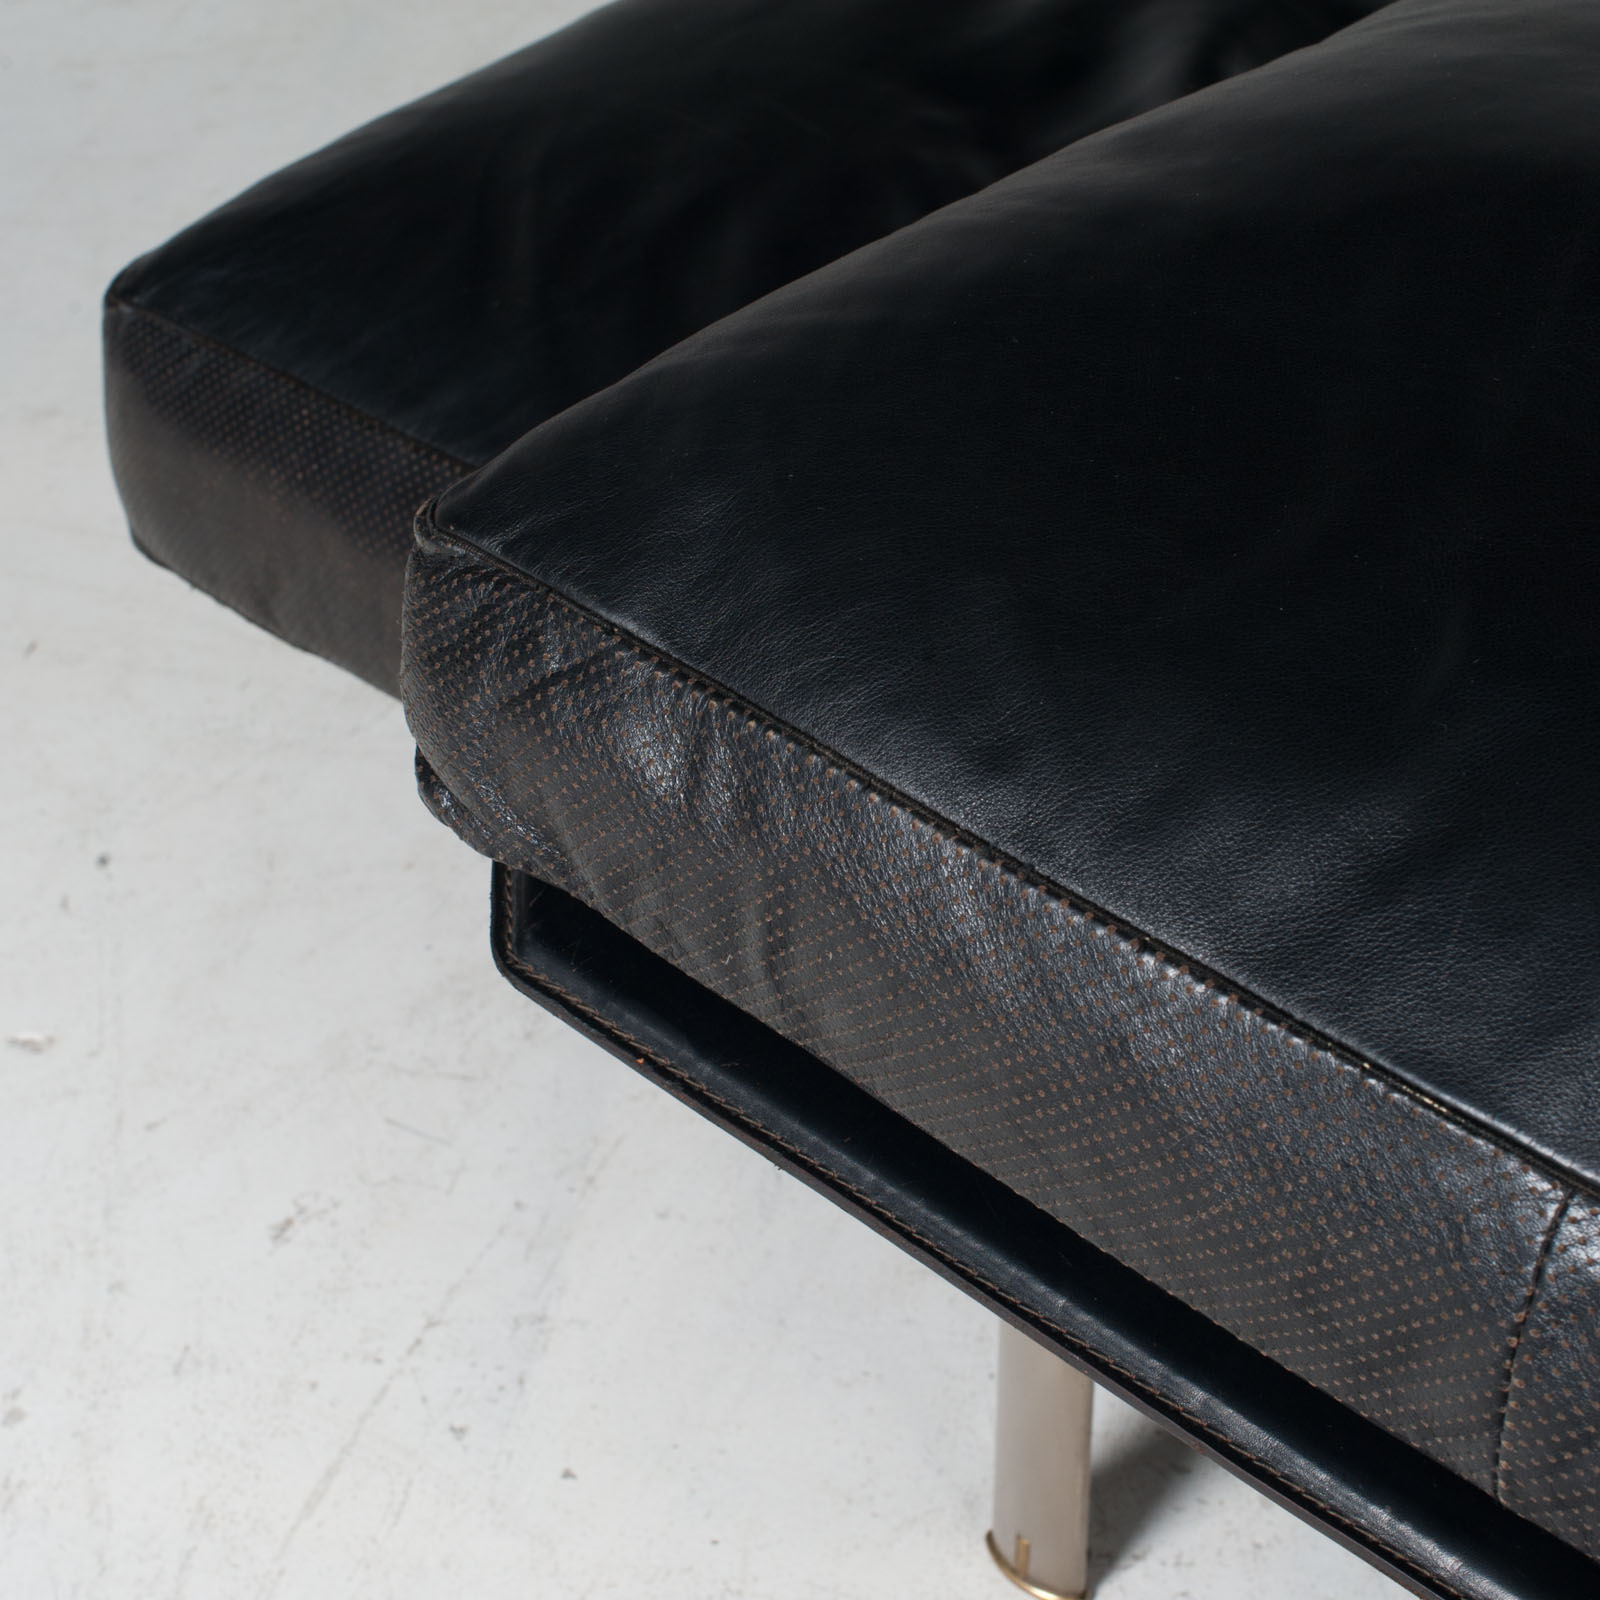 Model Diesis Chaise Lounge For B&b Italia By Antonio Citterio In Black Leather 1970s Italy 20